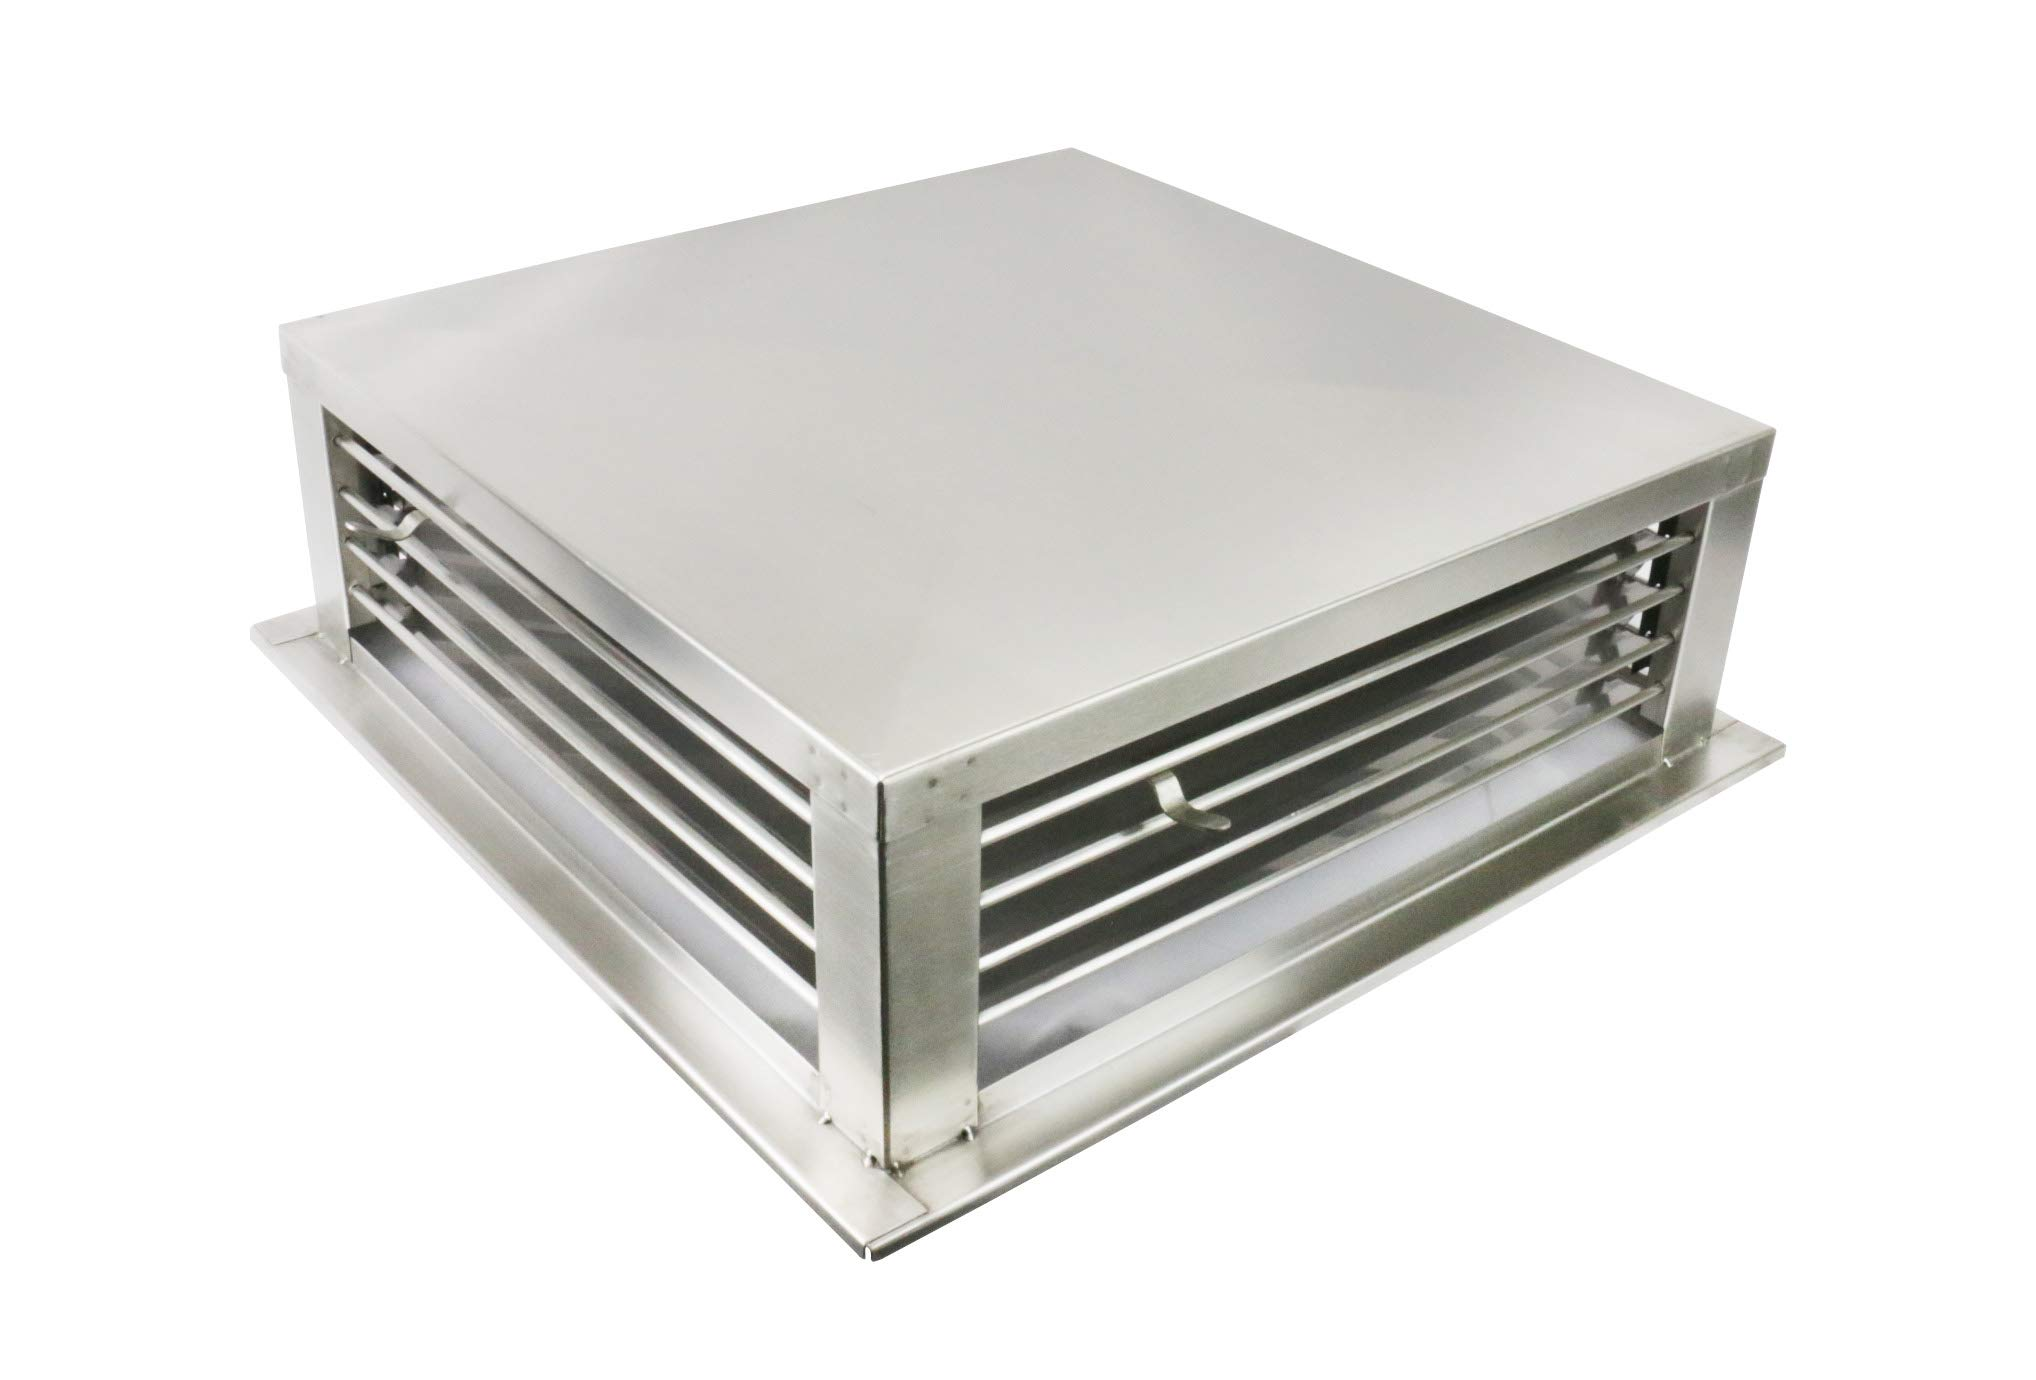 GSW DF-12S 12-Inch Stainless Steel 4-Way Adjustable Metal Diffuser for Evaporative/Swamp Cooler